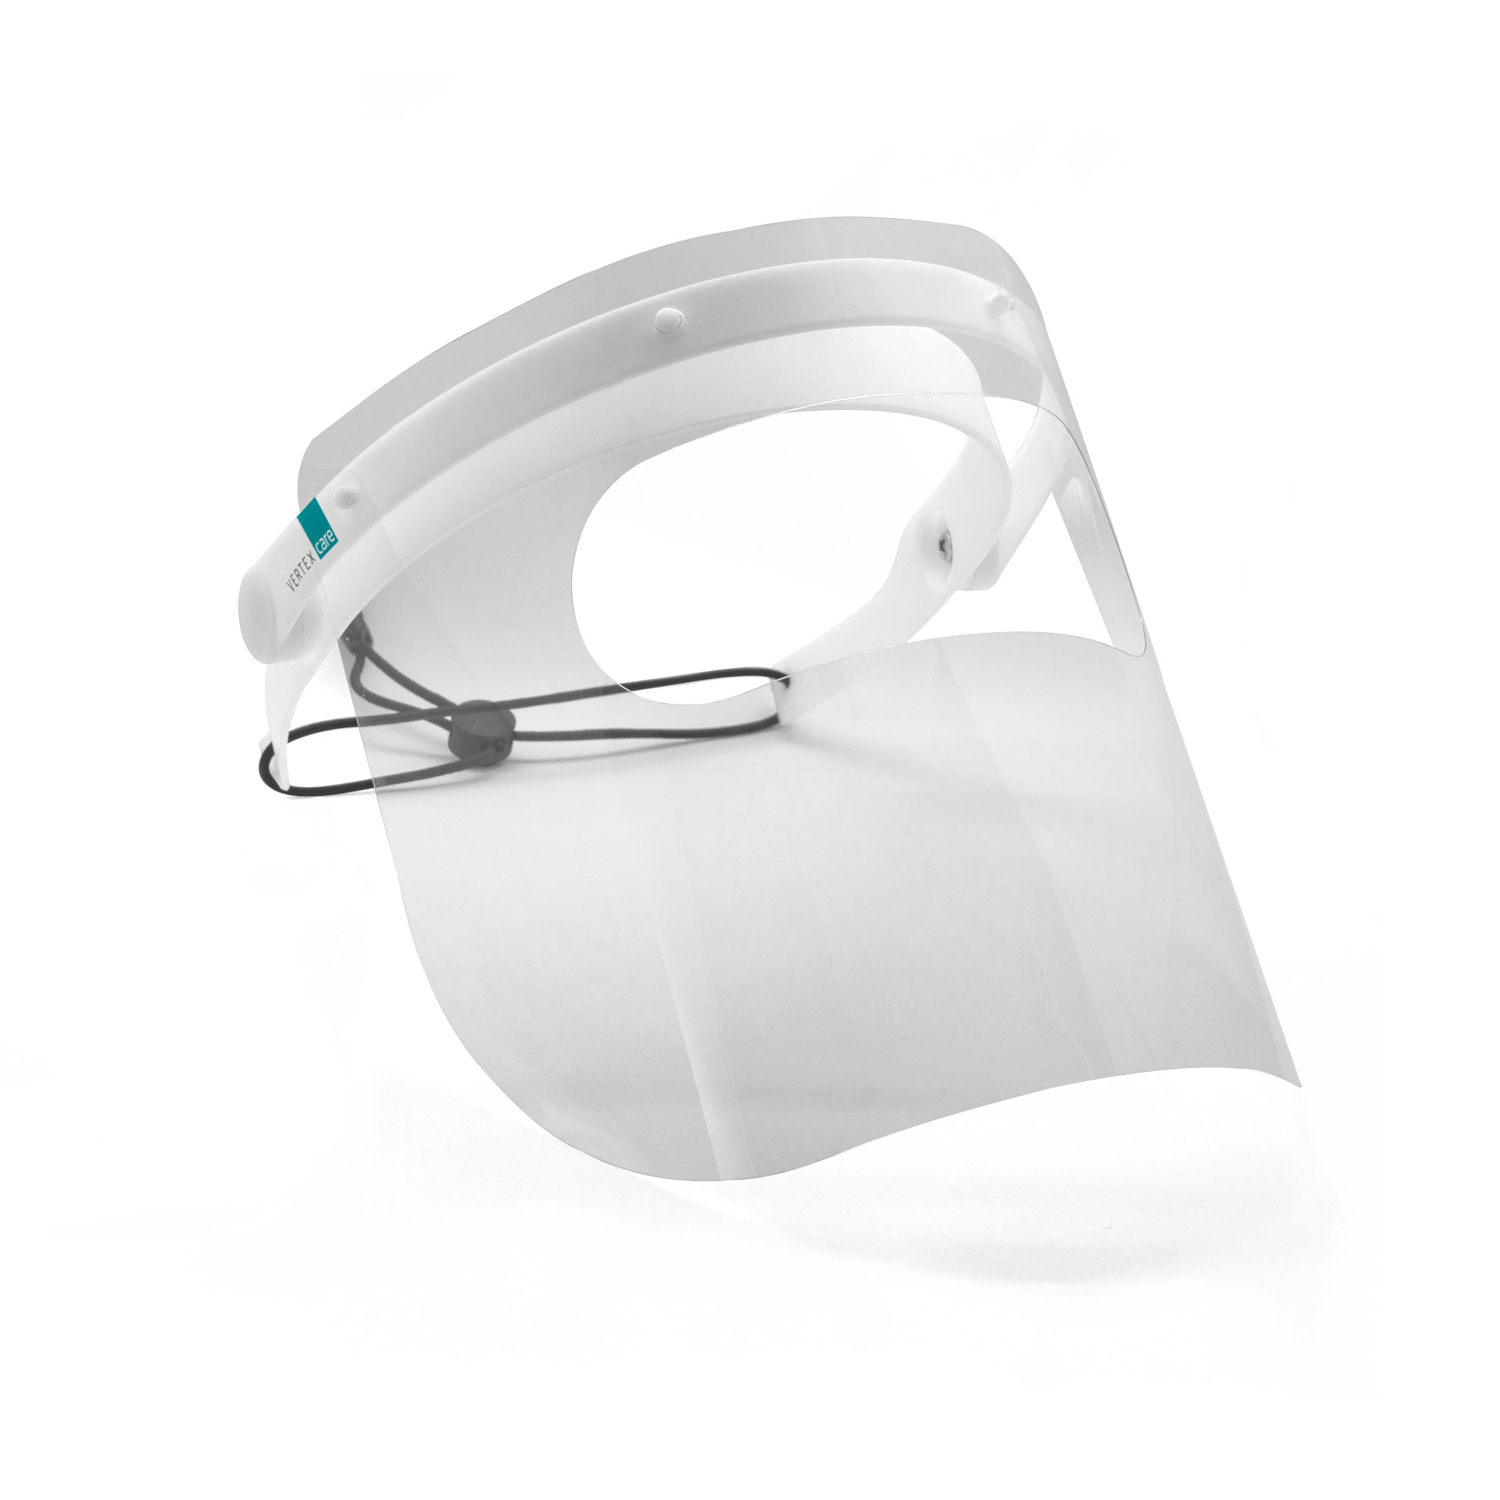 Multifunctional face protector with 5 full visors + 5 loupes visors